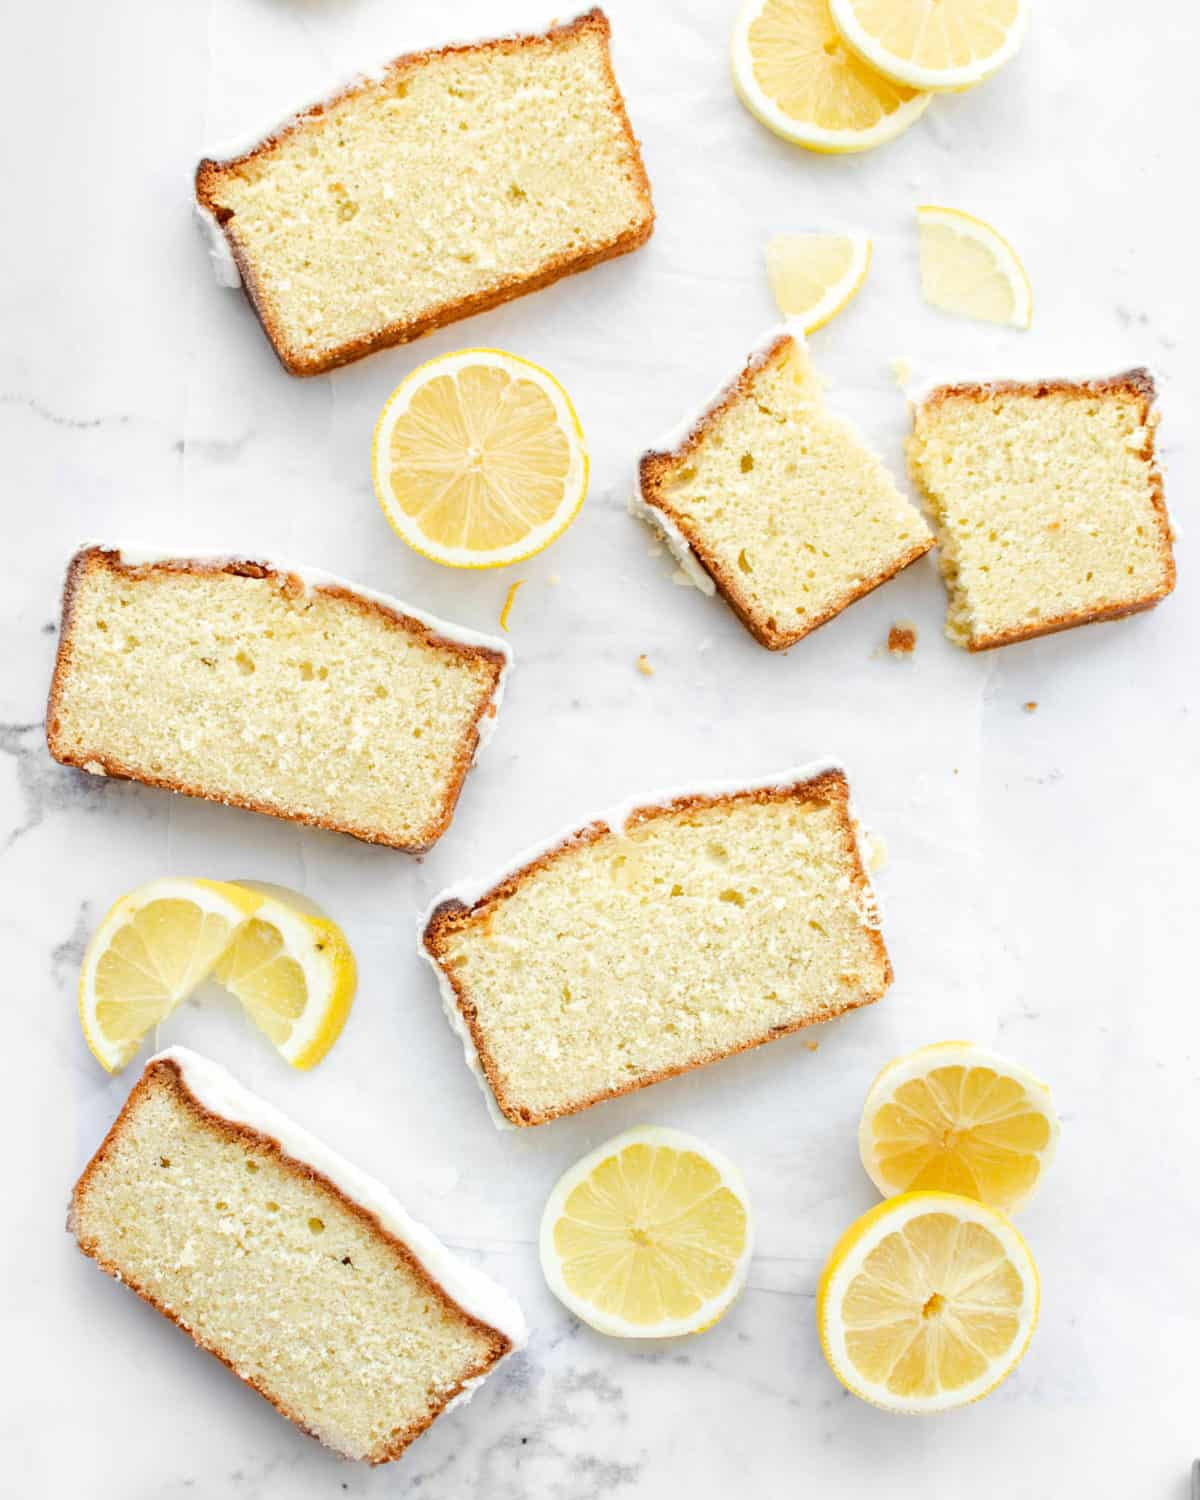 Multiple slices of lemon pound cake on a table.